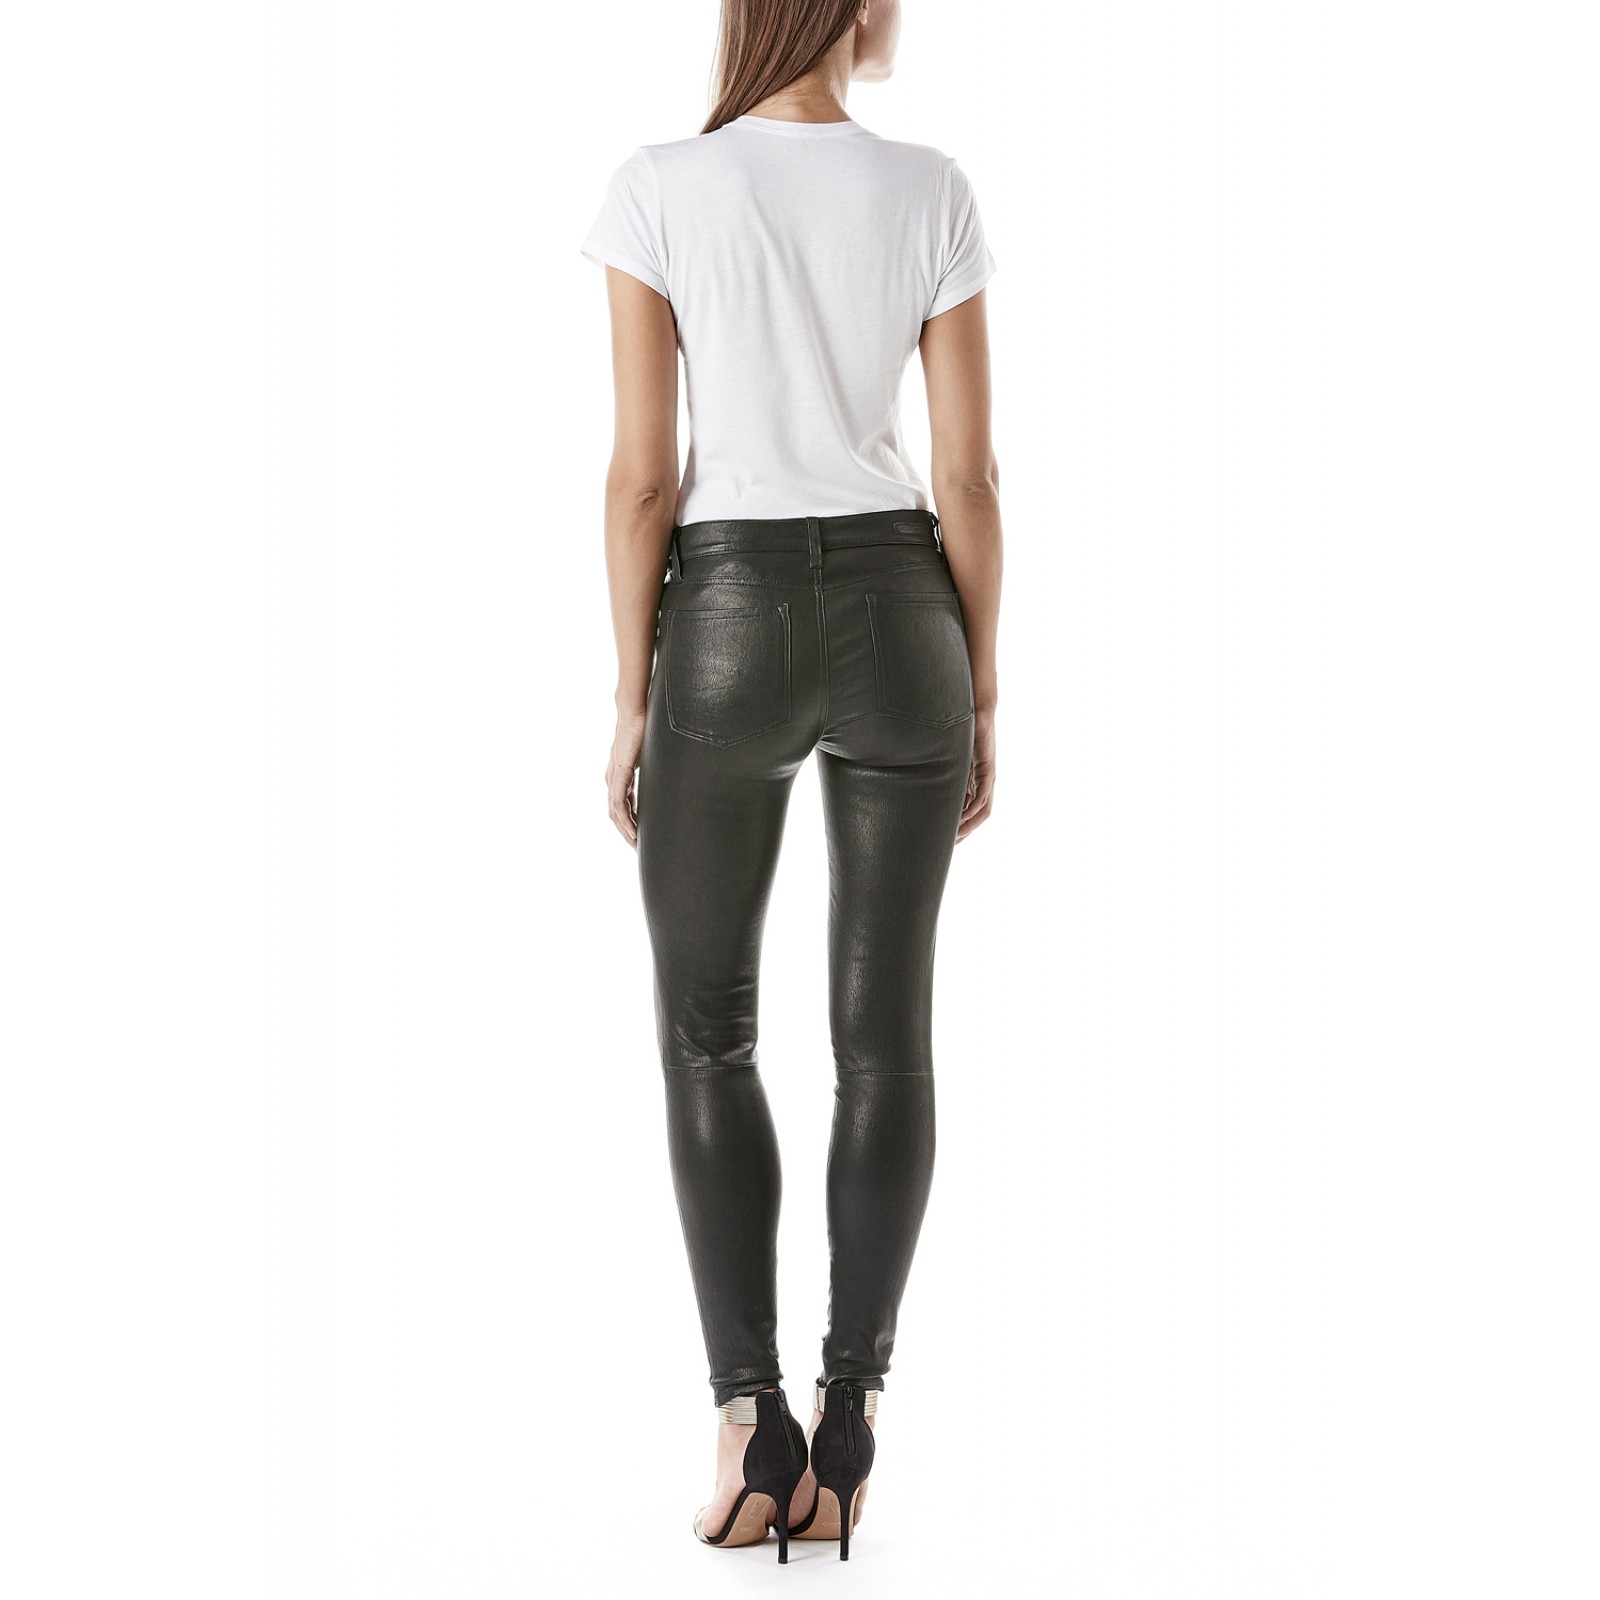 French stretch leather janice ultra skinny for women